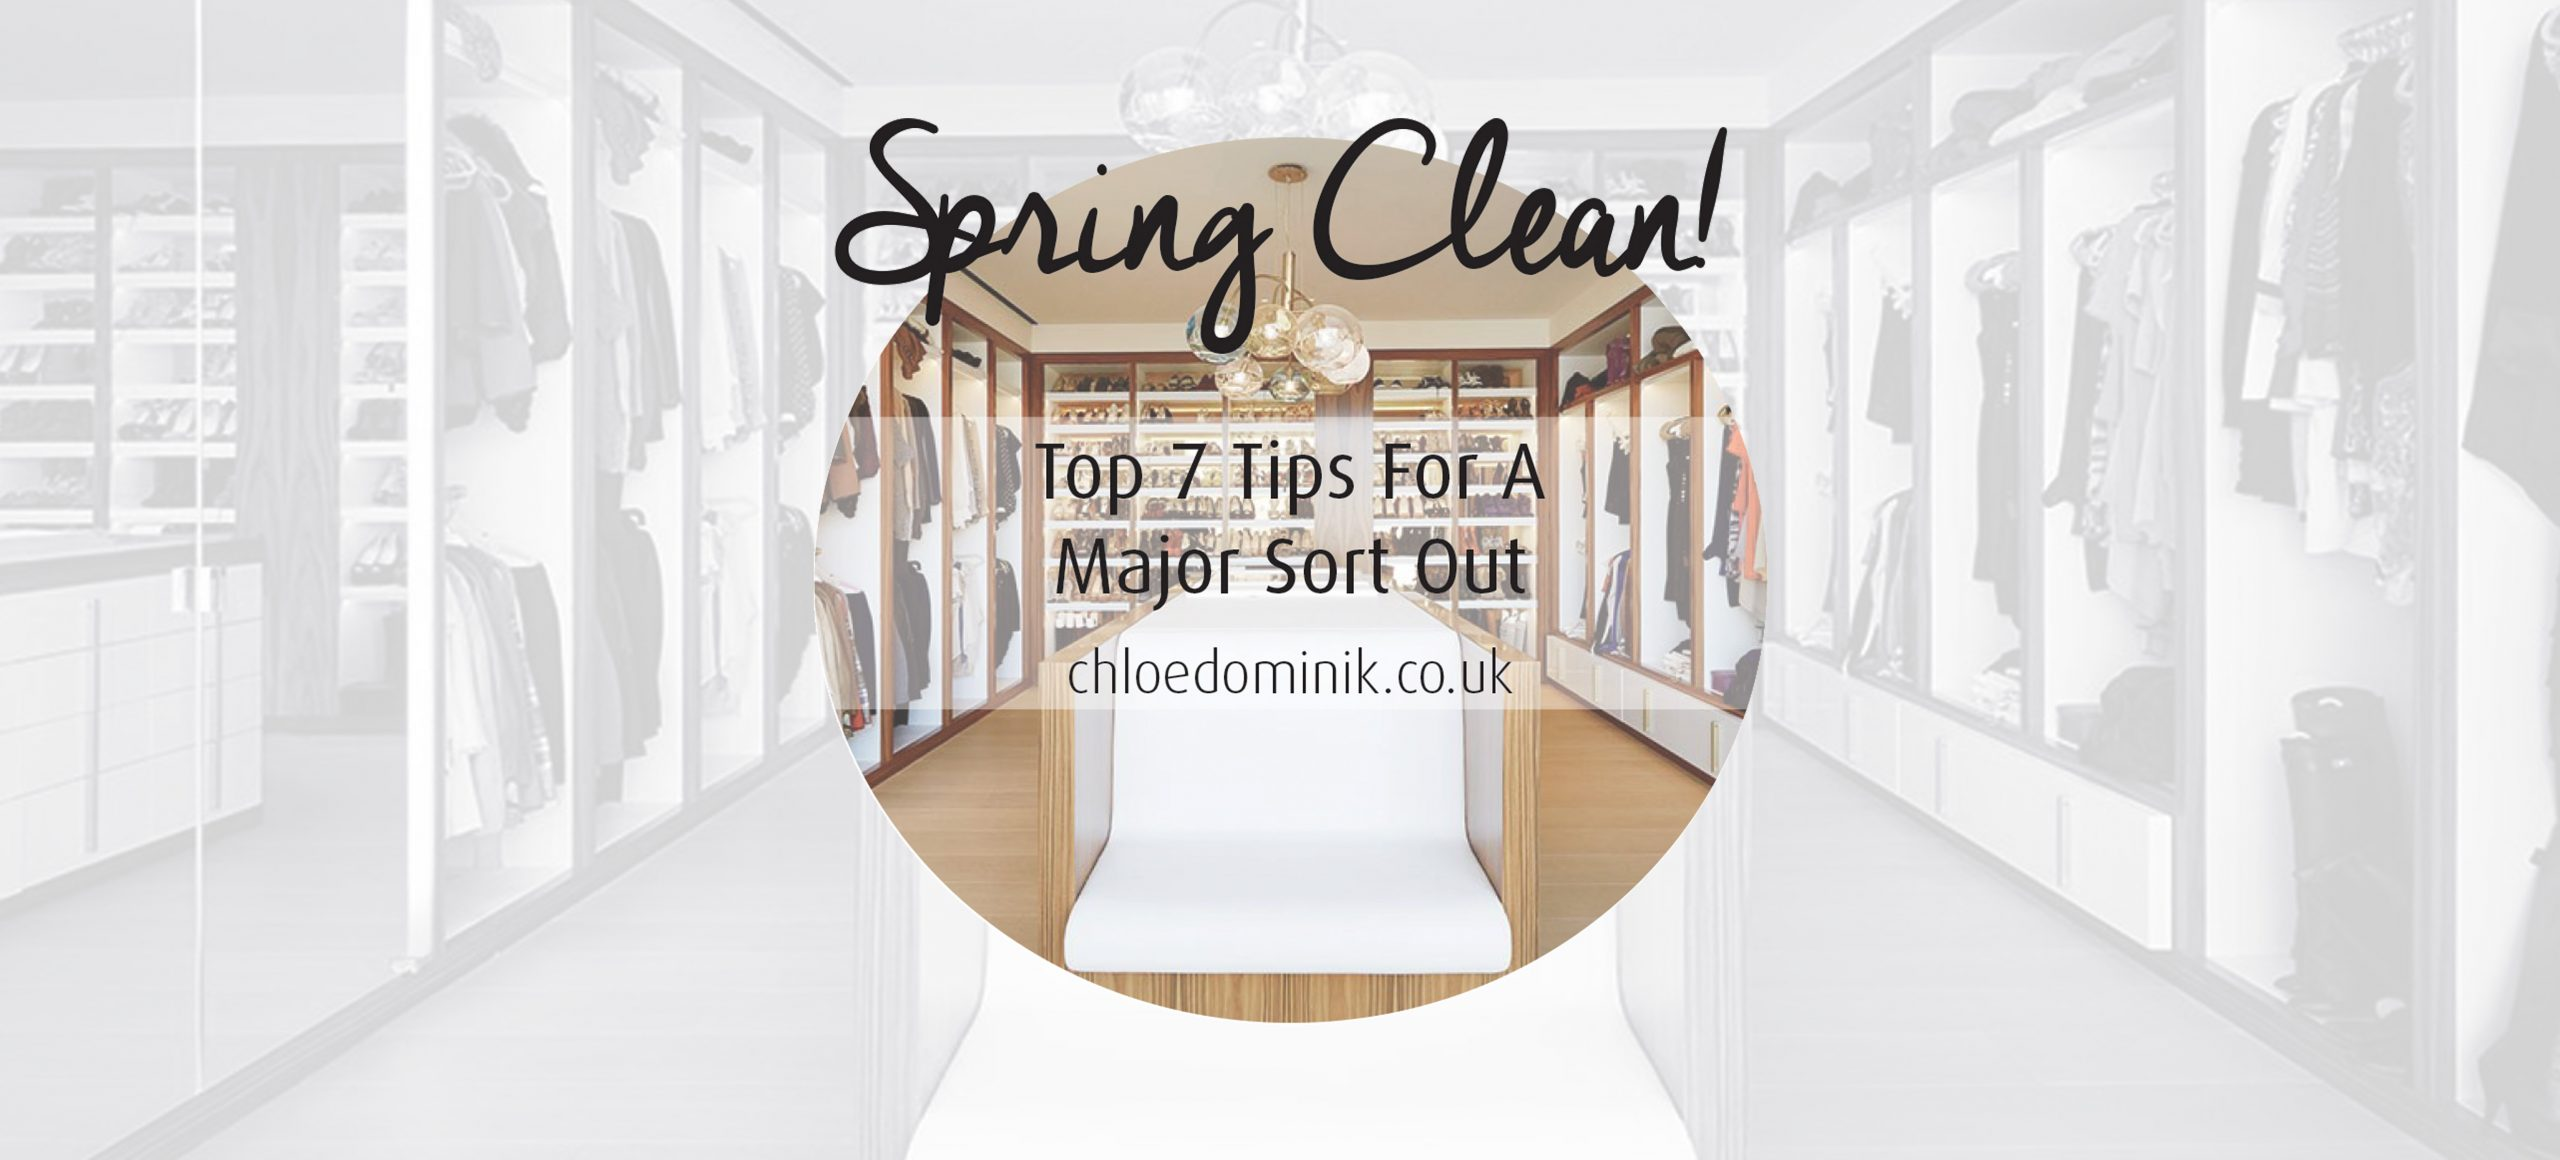 Spring Clean: Top 7 Tips For A Major Sort Out